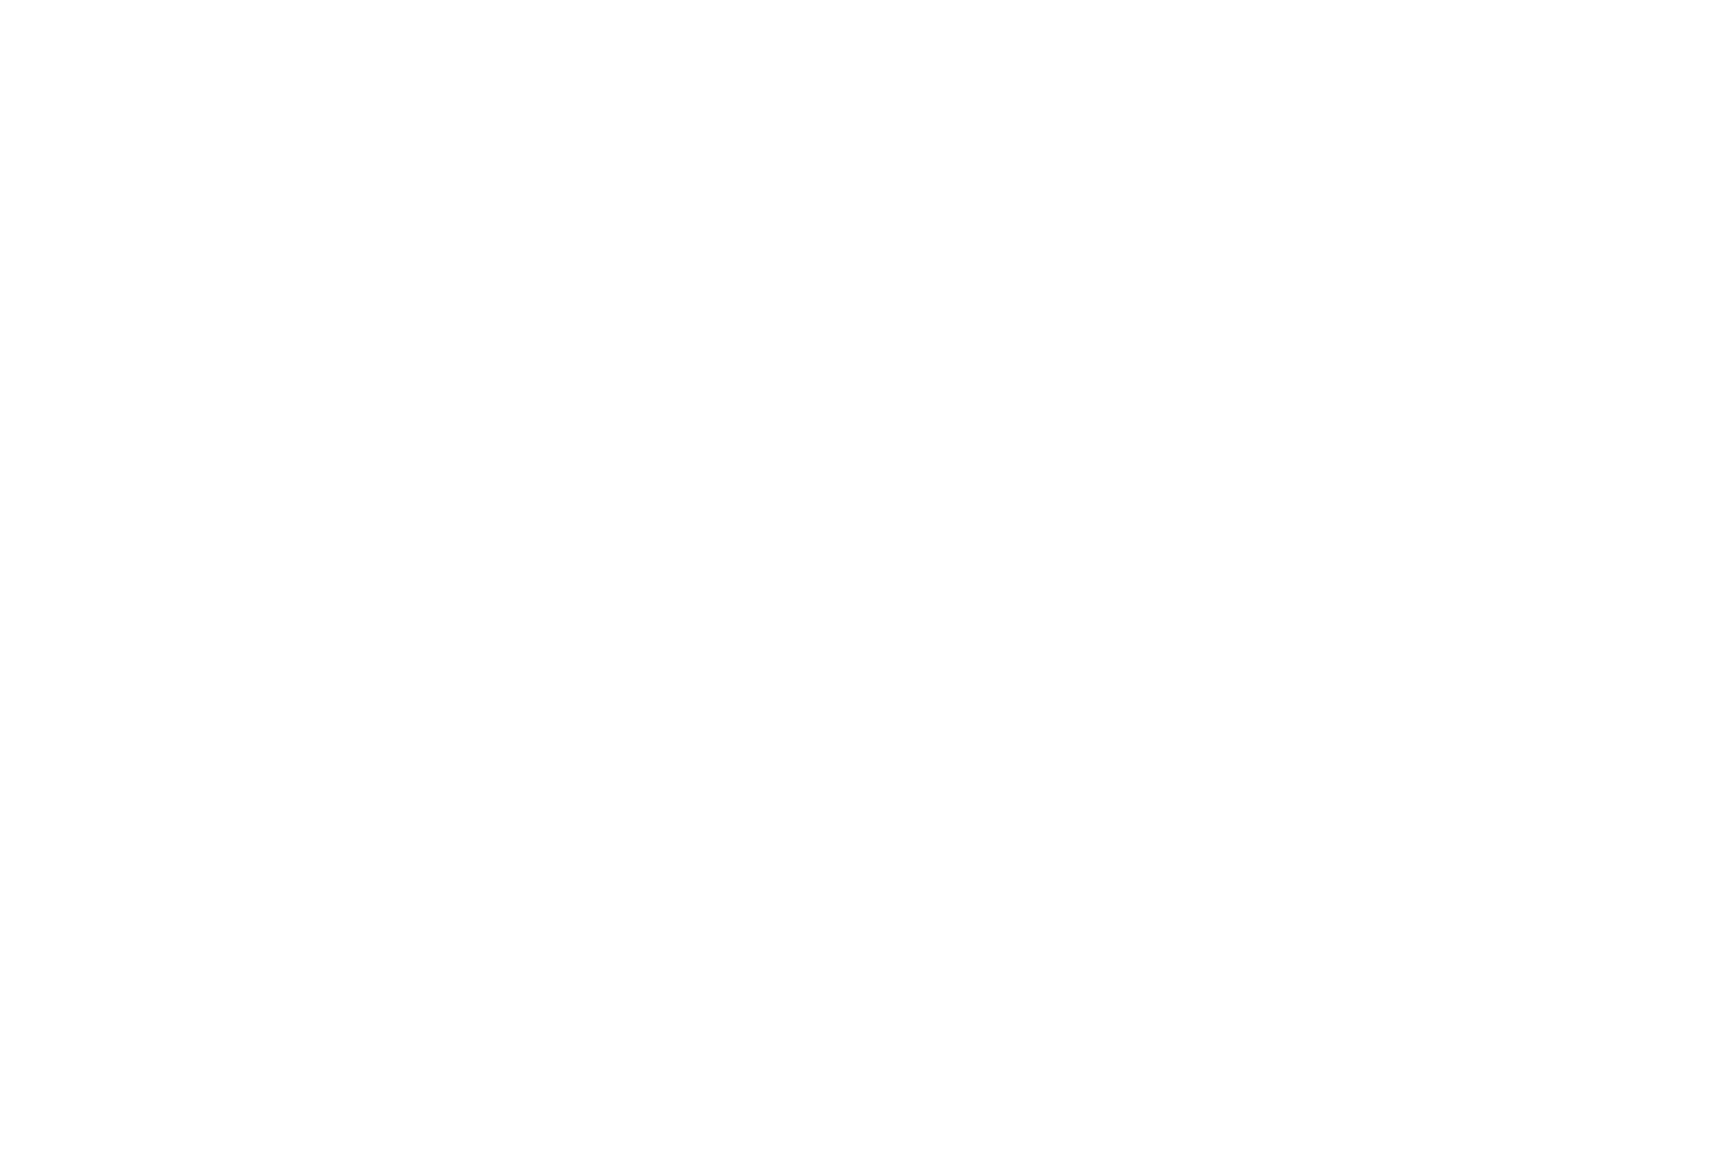 OFFICIAL SELECTION Simply Shorts World Cinema 2017 White